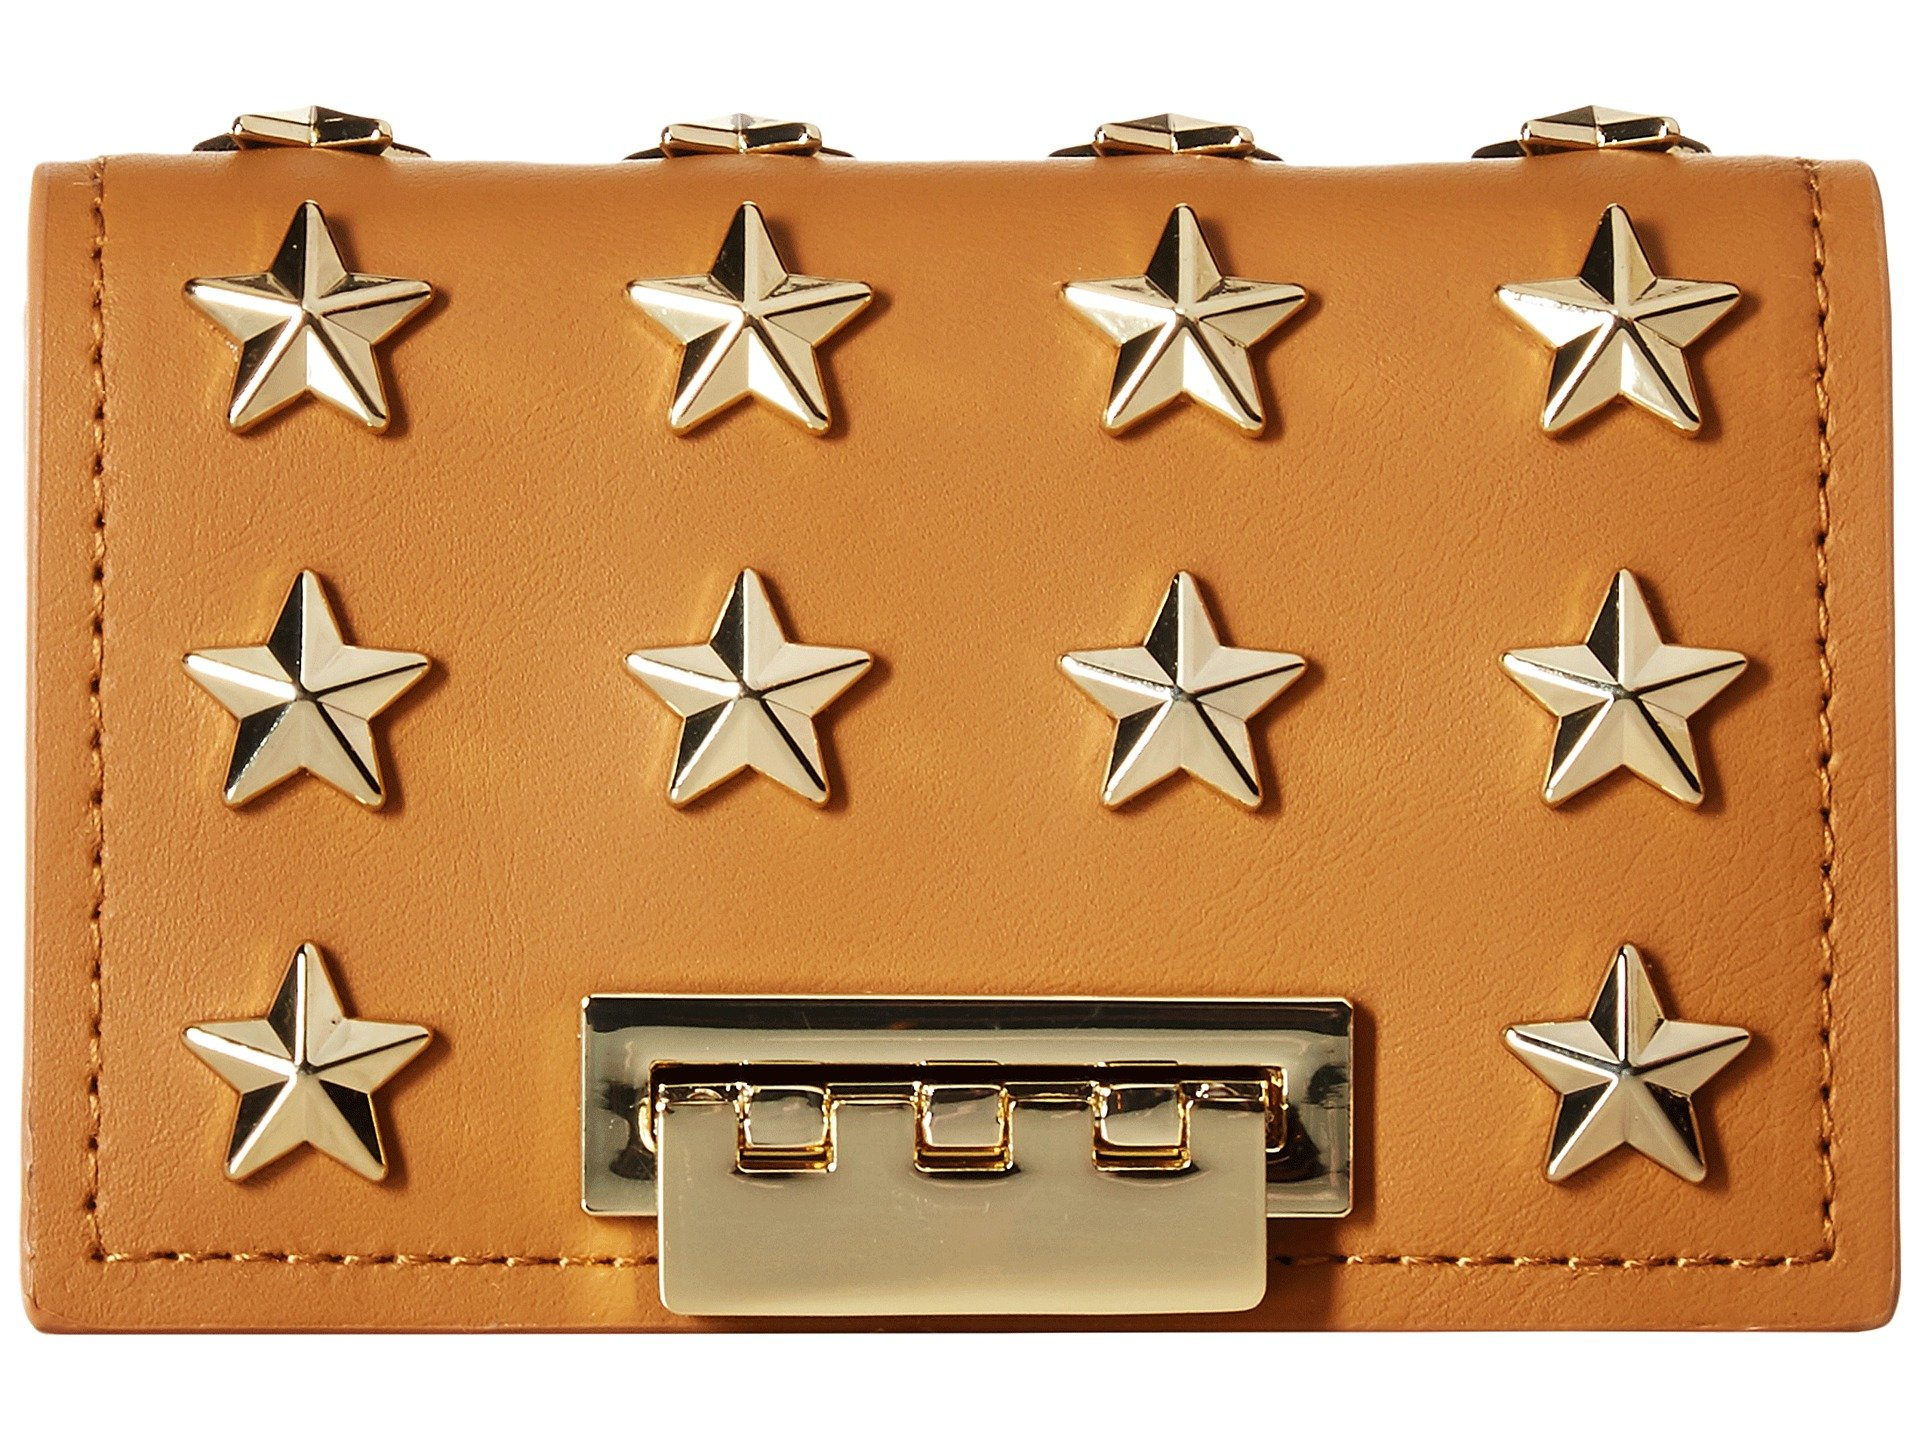 Monedero para Mujer ZAC Zac Posen Earthette Card Case with Chain - Star Stud  + ZAC Zac Posen en VeoyCompro.net